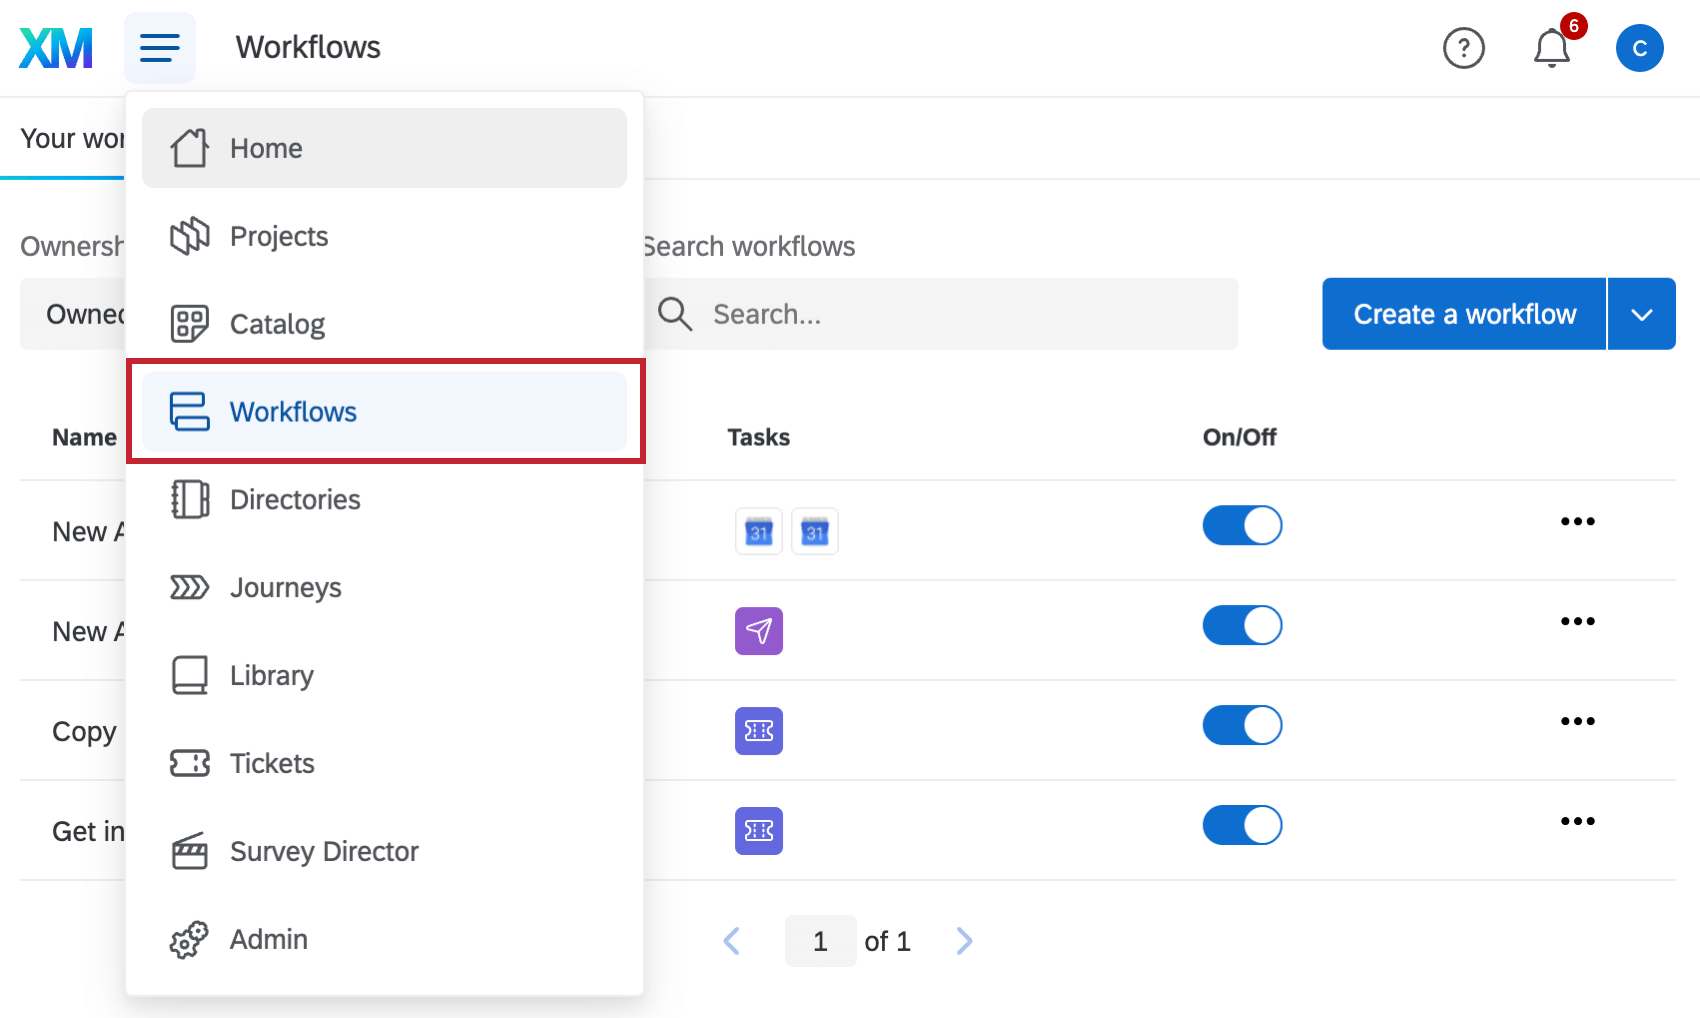 The Workflows page in the global menu